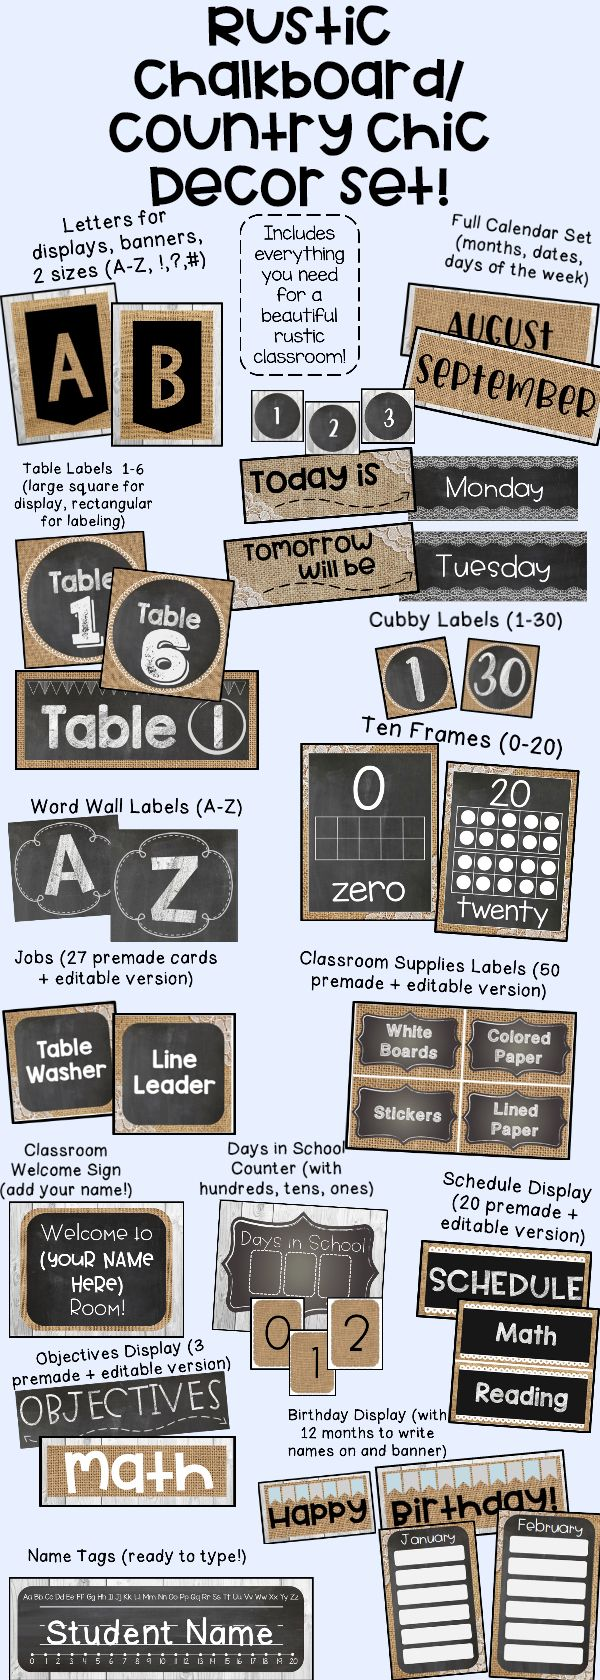 Rustic Chalkboard / Country Chic Classroom Decor Set ...